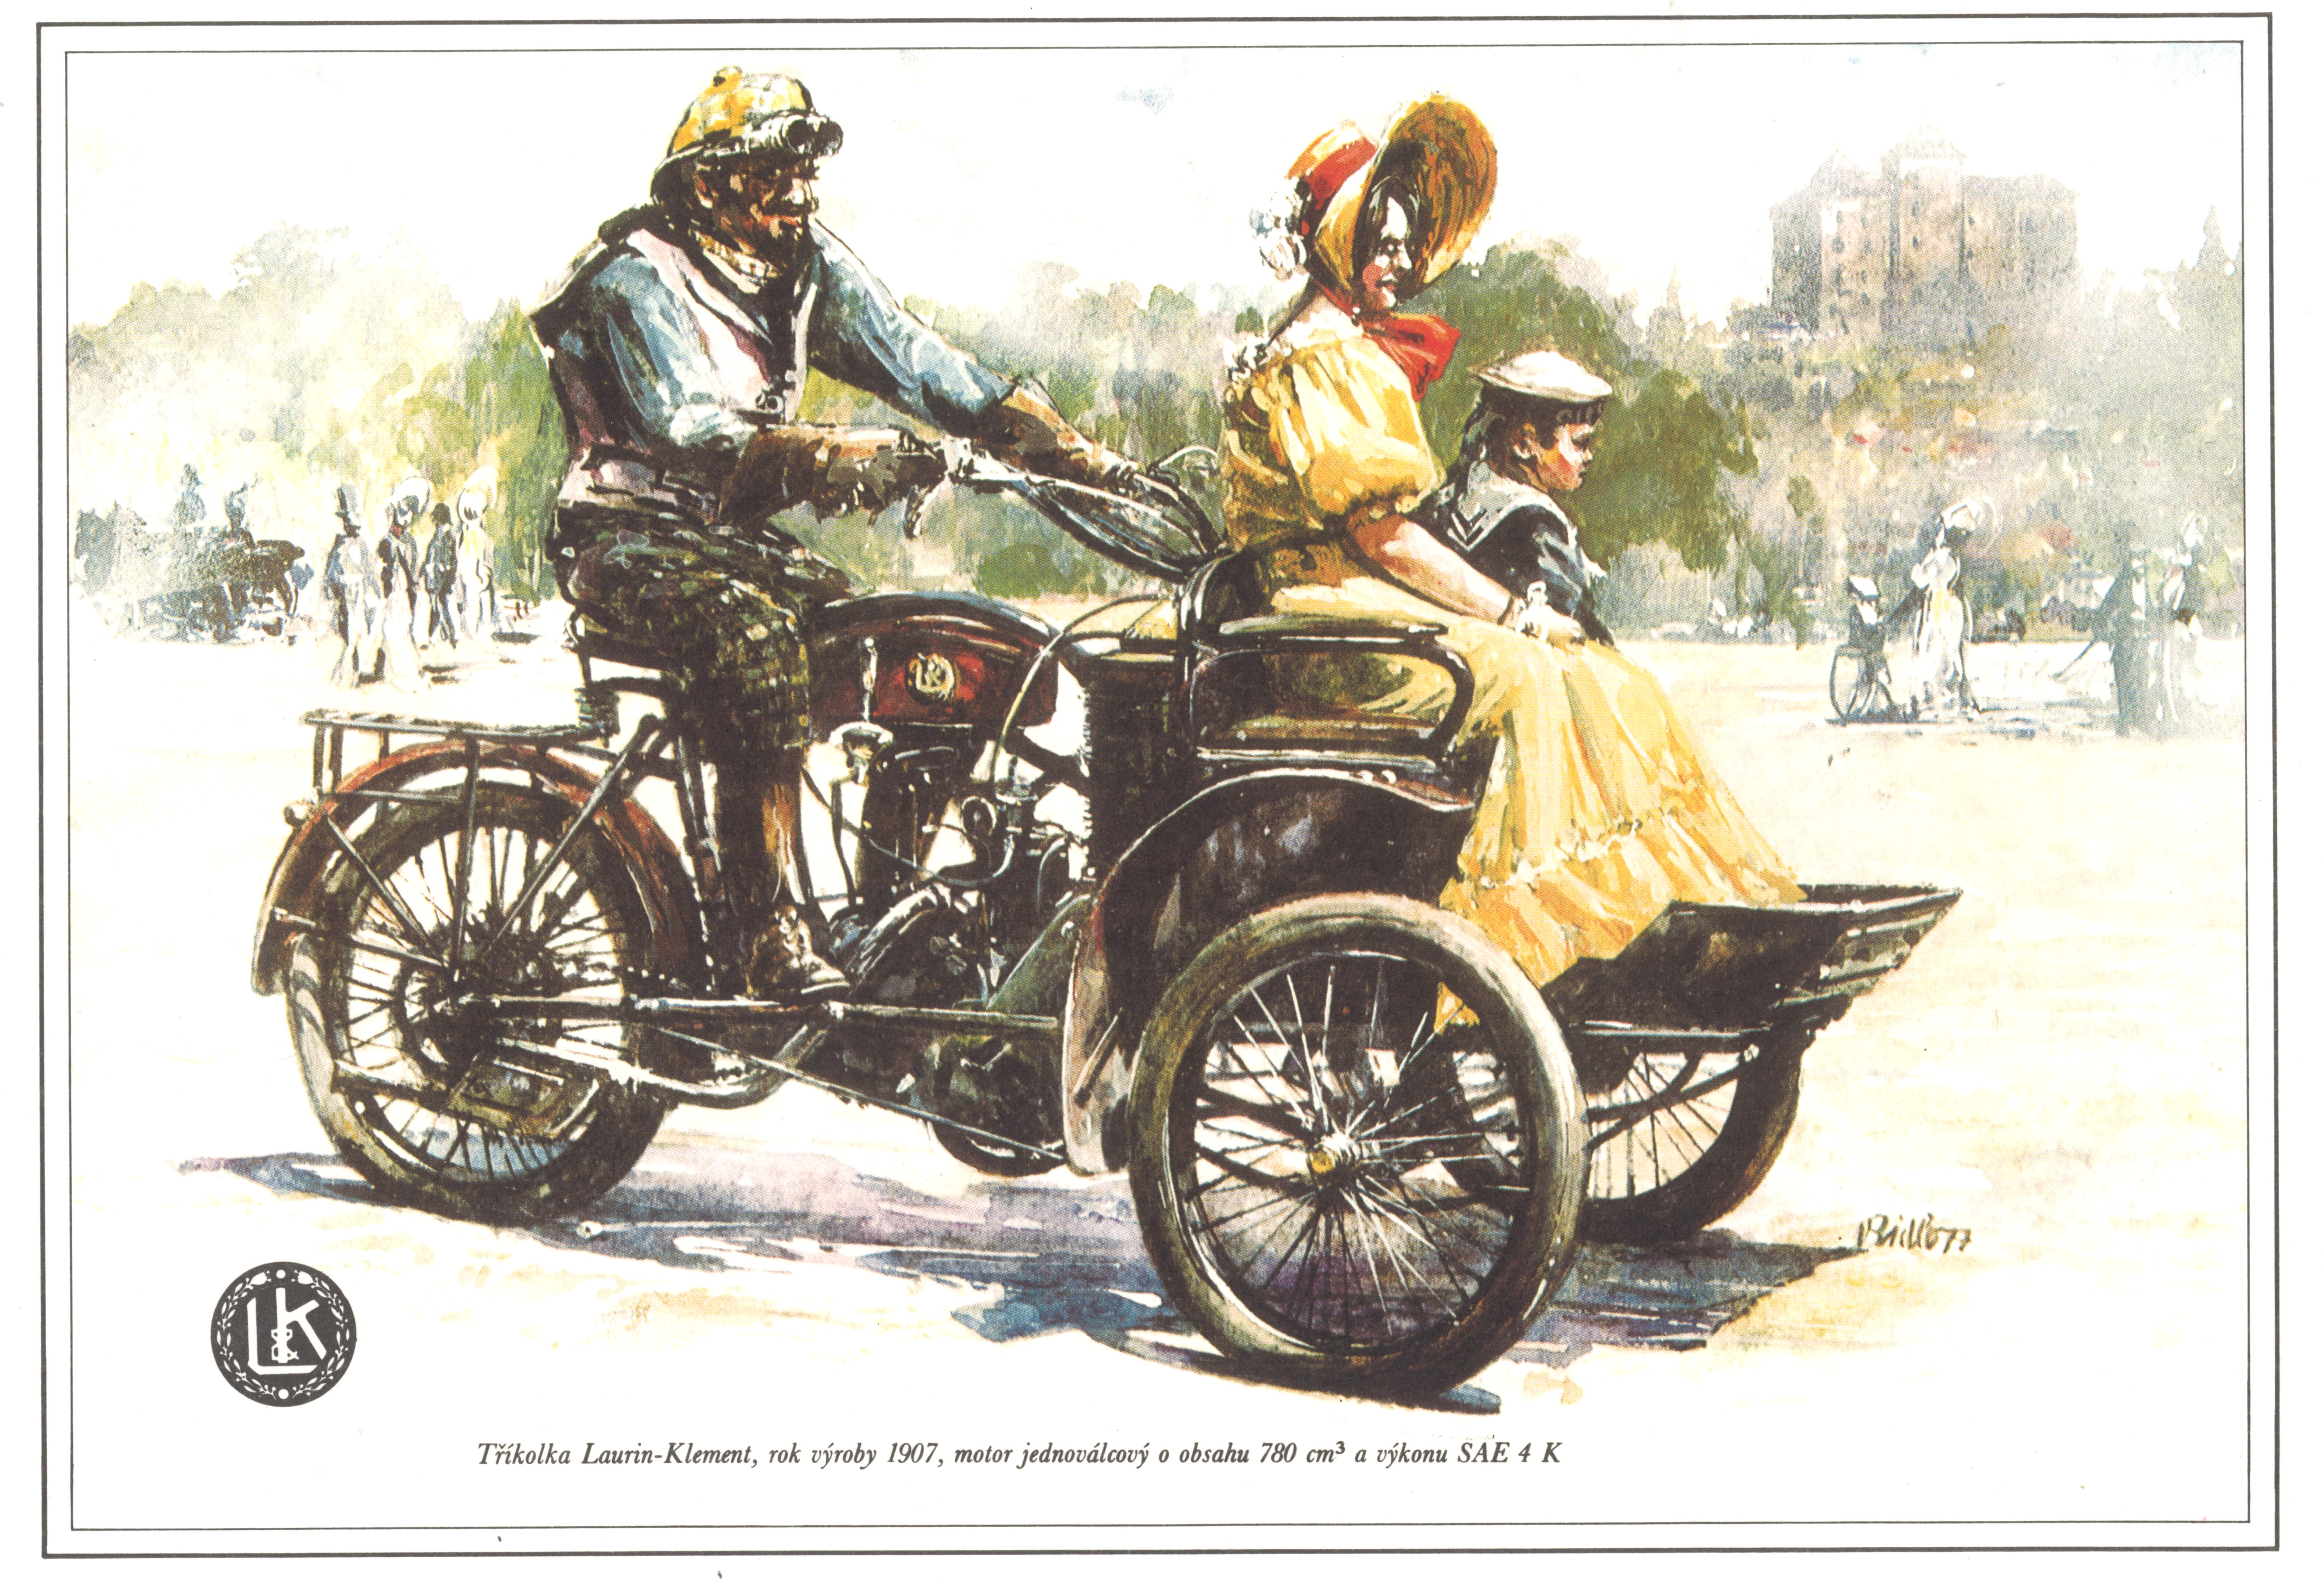 Lesser-known models from SKODA AUTO's 125-year history: The LW three-wheeler from Laurin & Klement - Image 3